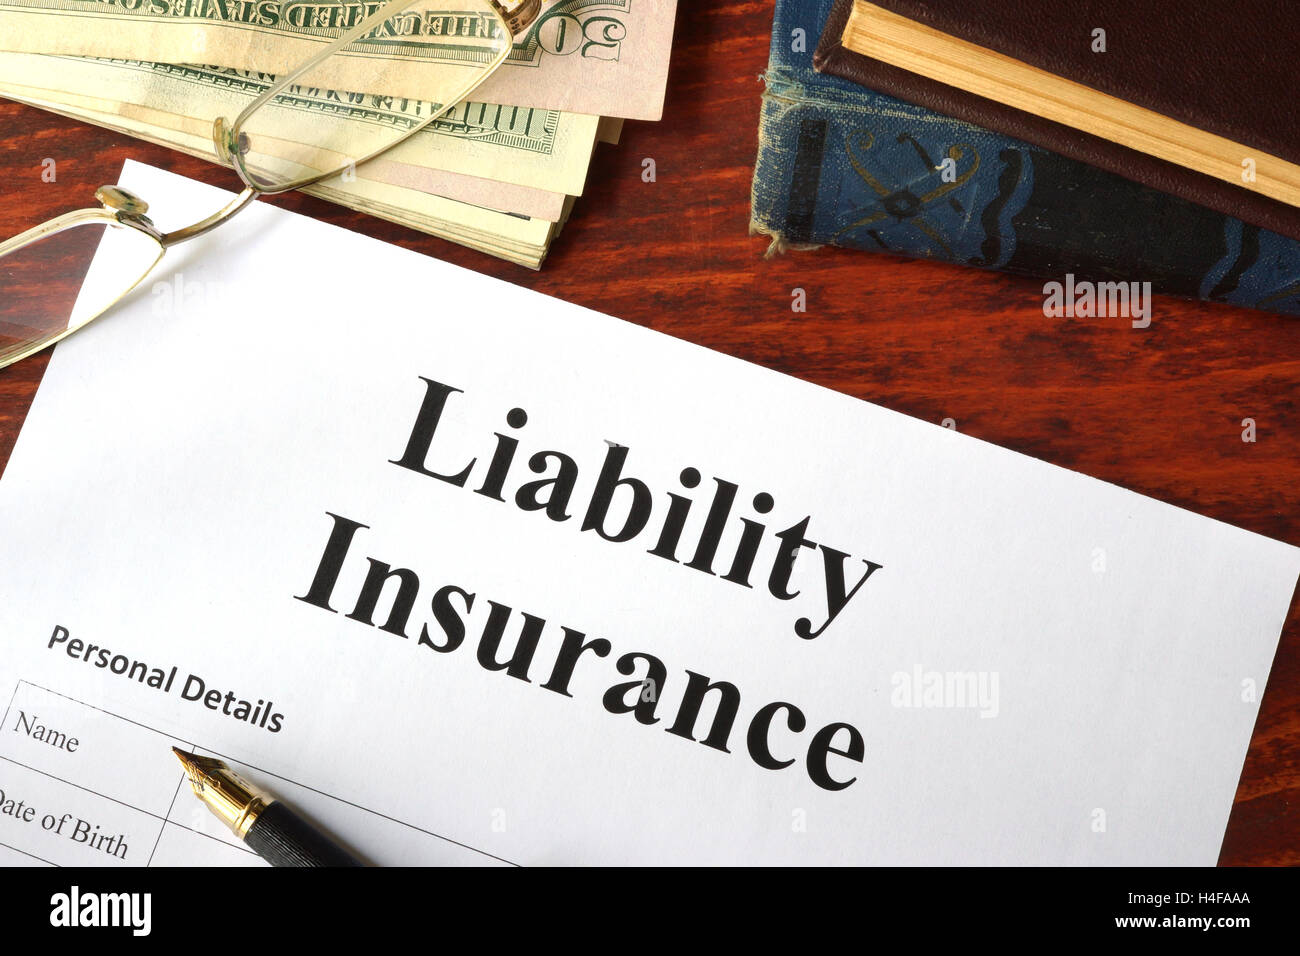 Liability insurance on a wooden table with glasses. - Stock Image